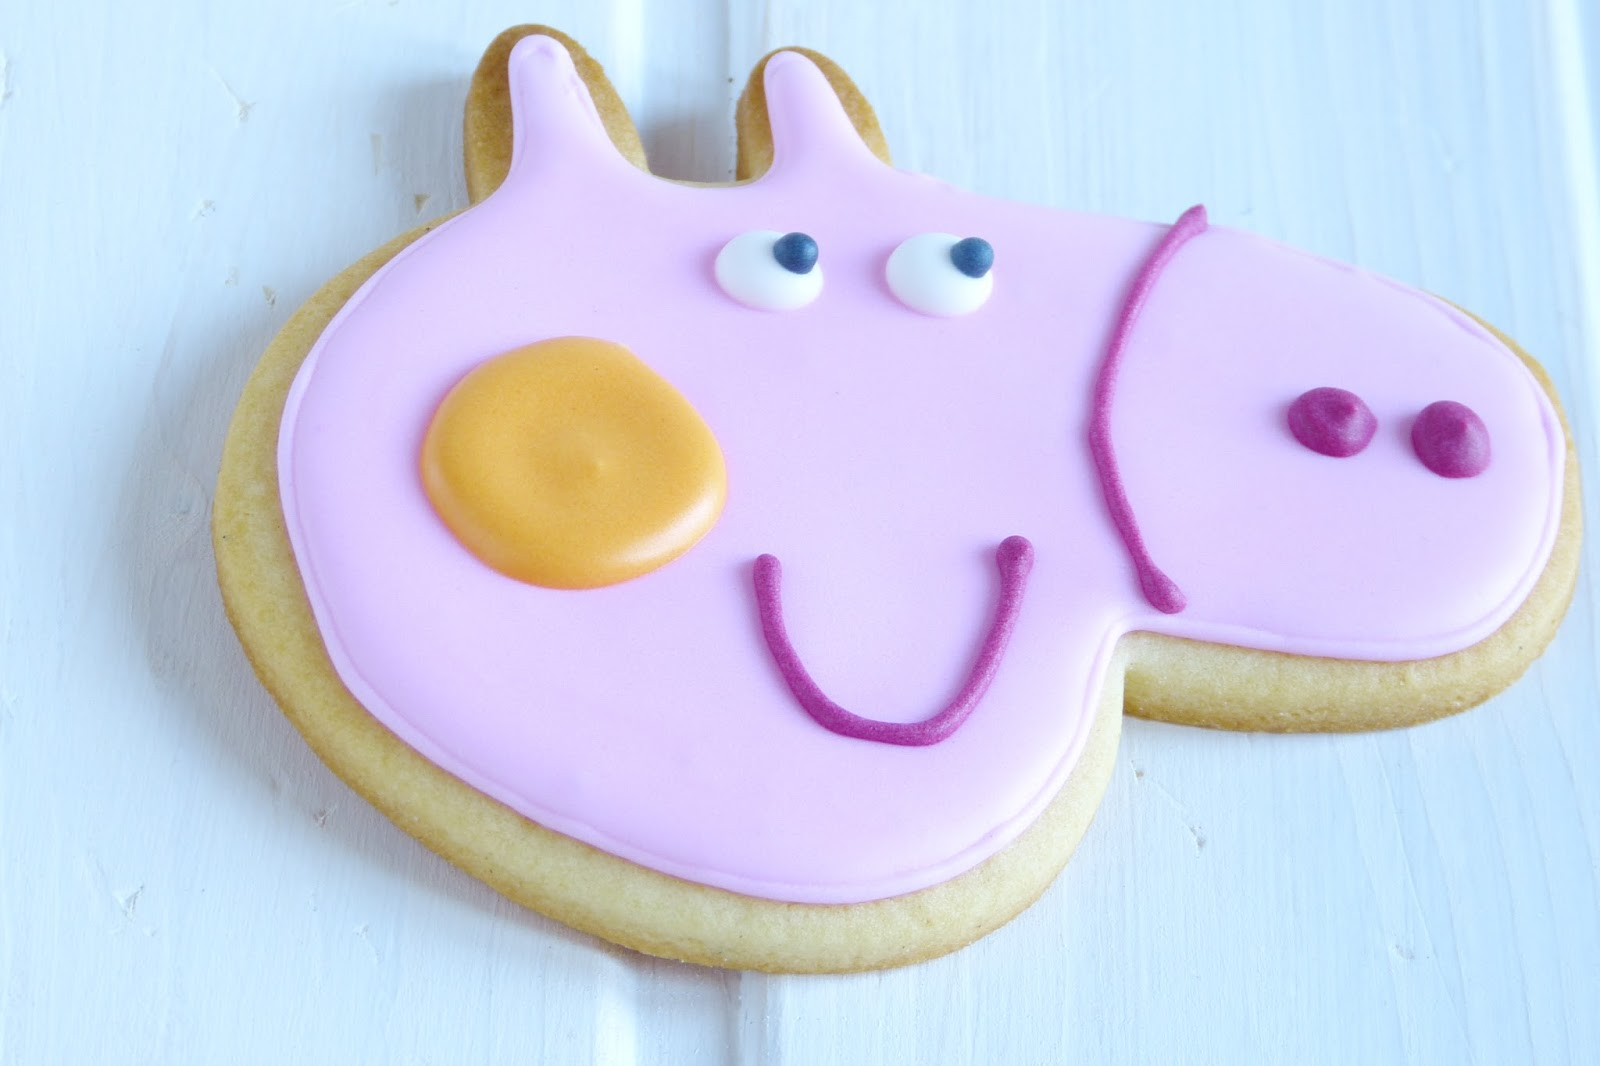 Decorar Con Glasa Real DecoraciÓn De Galletas Con Glasa Paso A Paso Galletas Peppa Pig